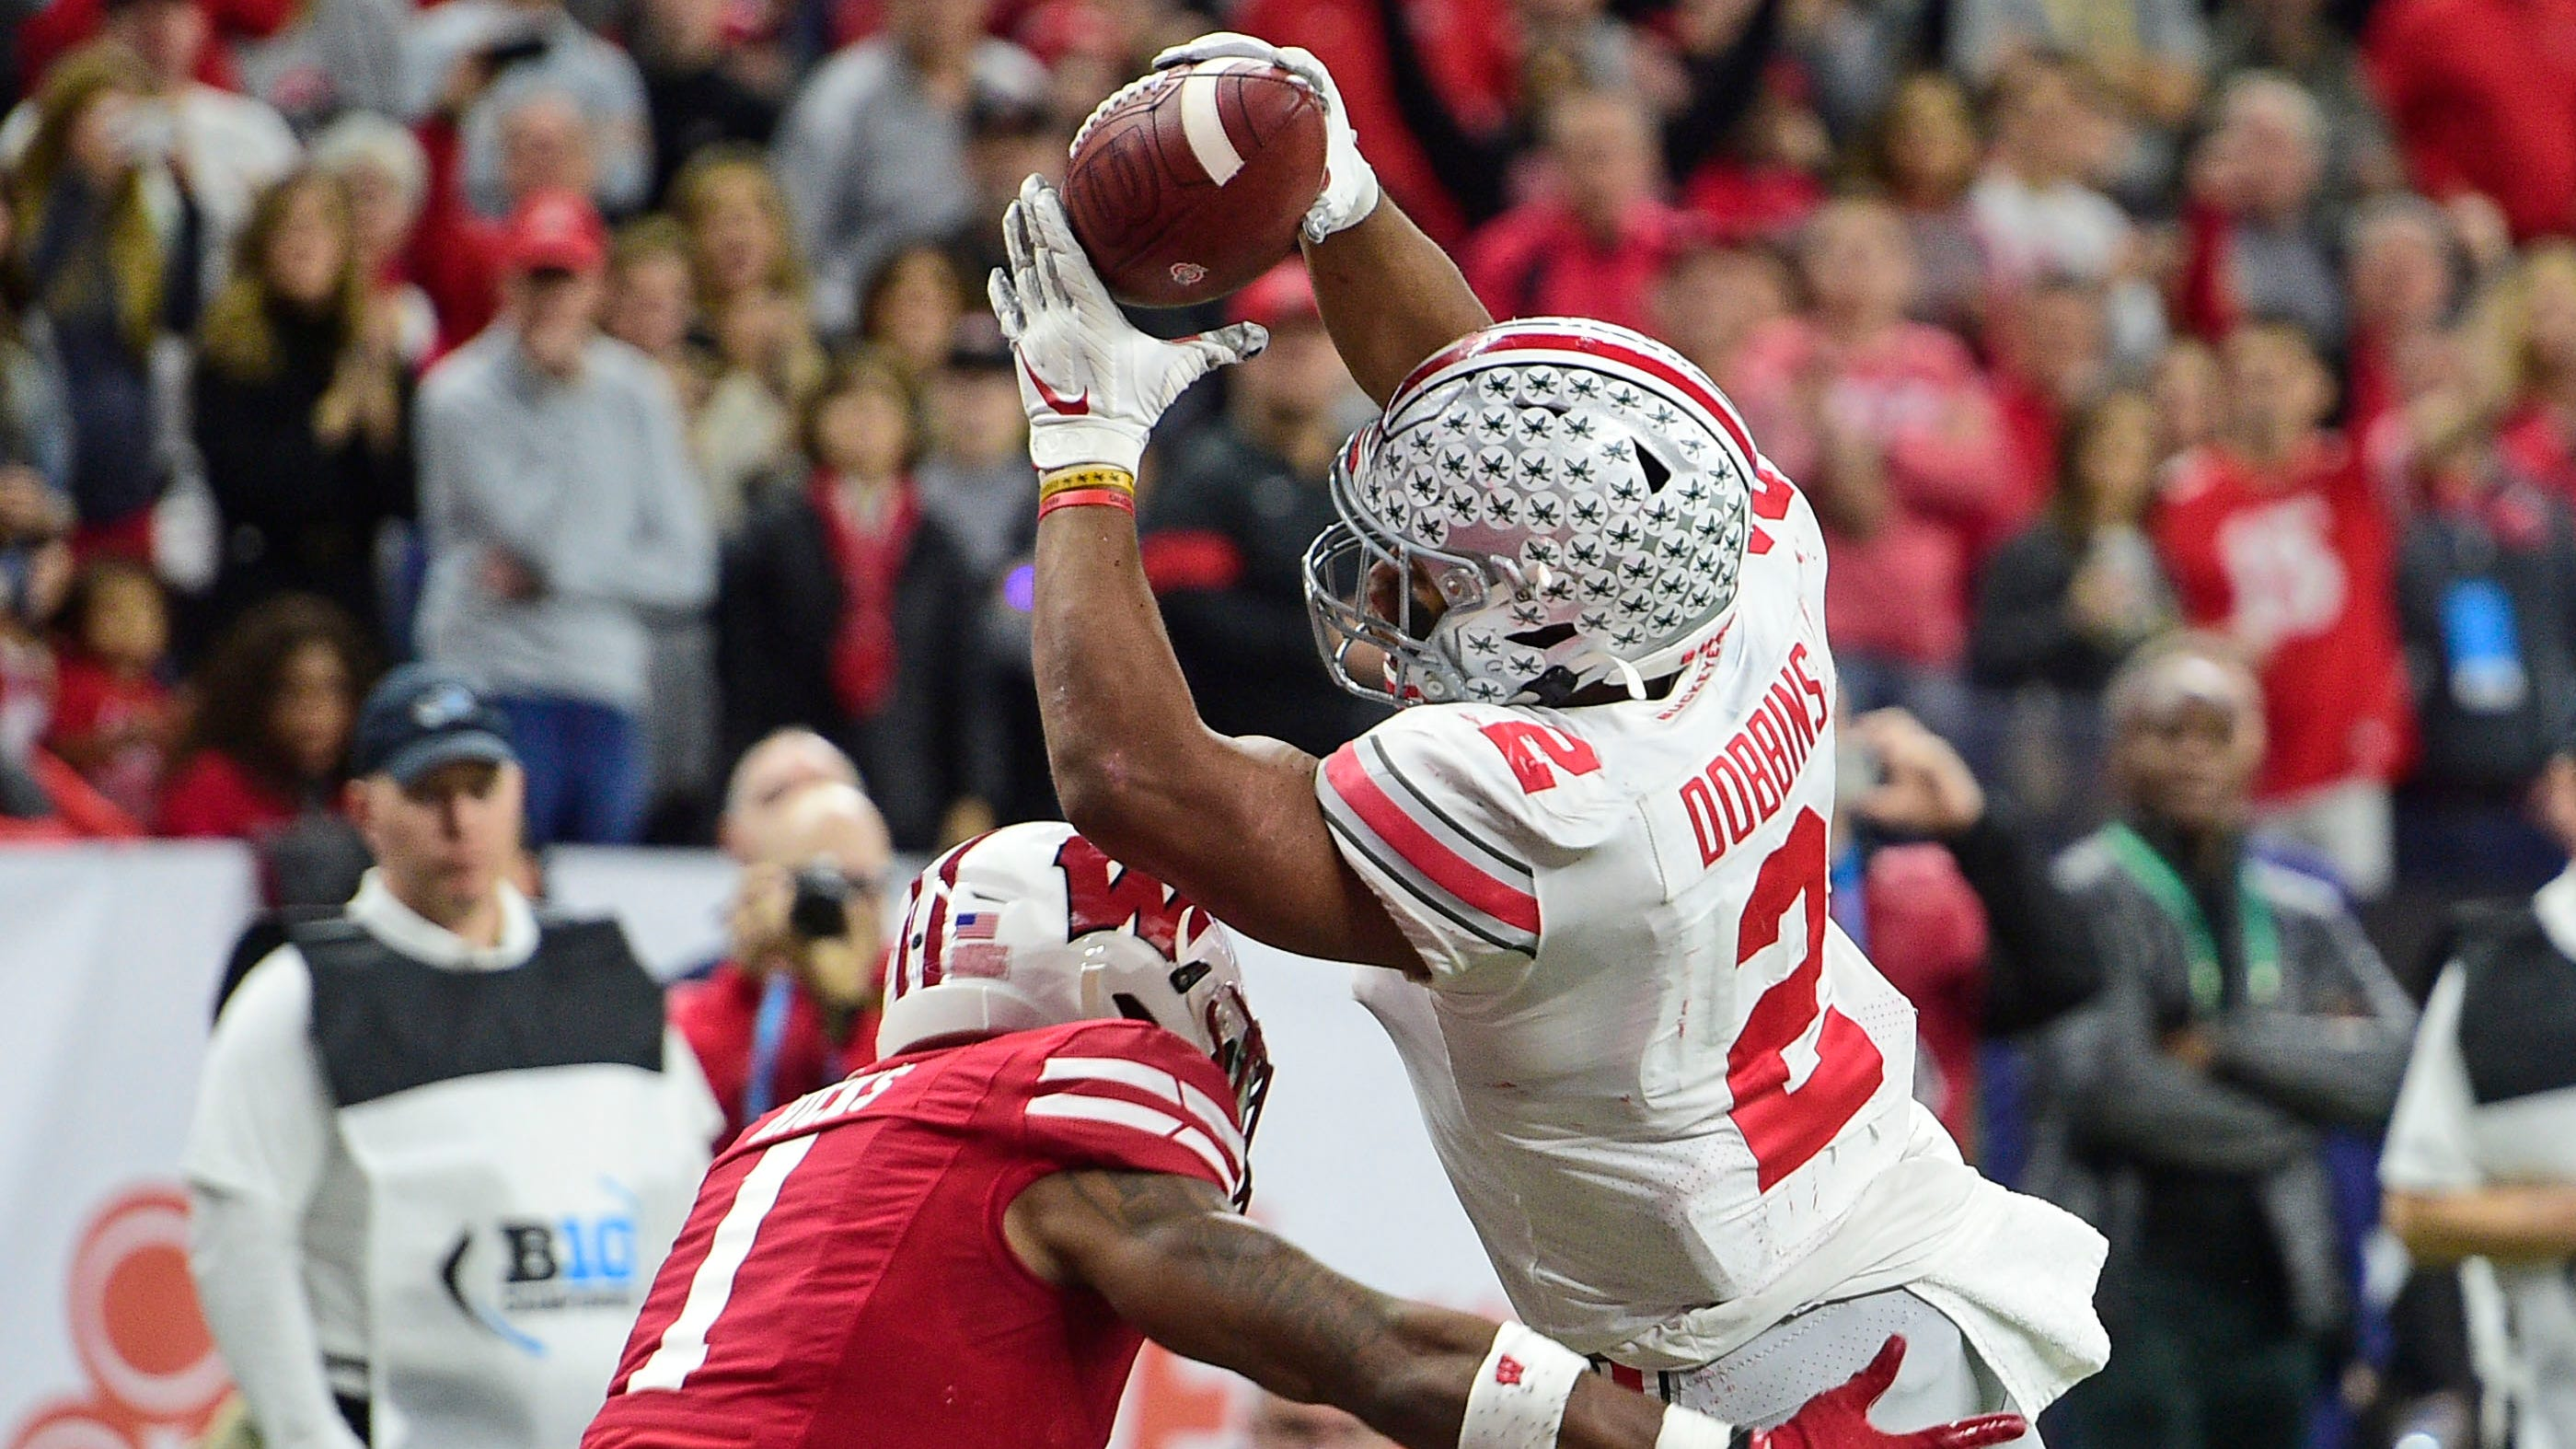 Ohio State books Playoff ticket with another win over Wisconsin